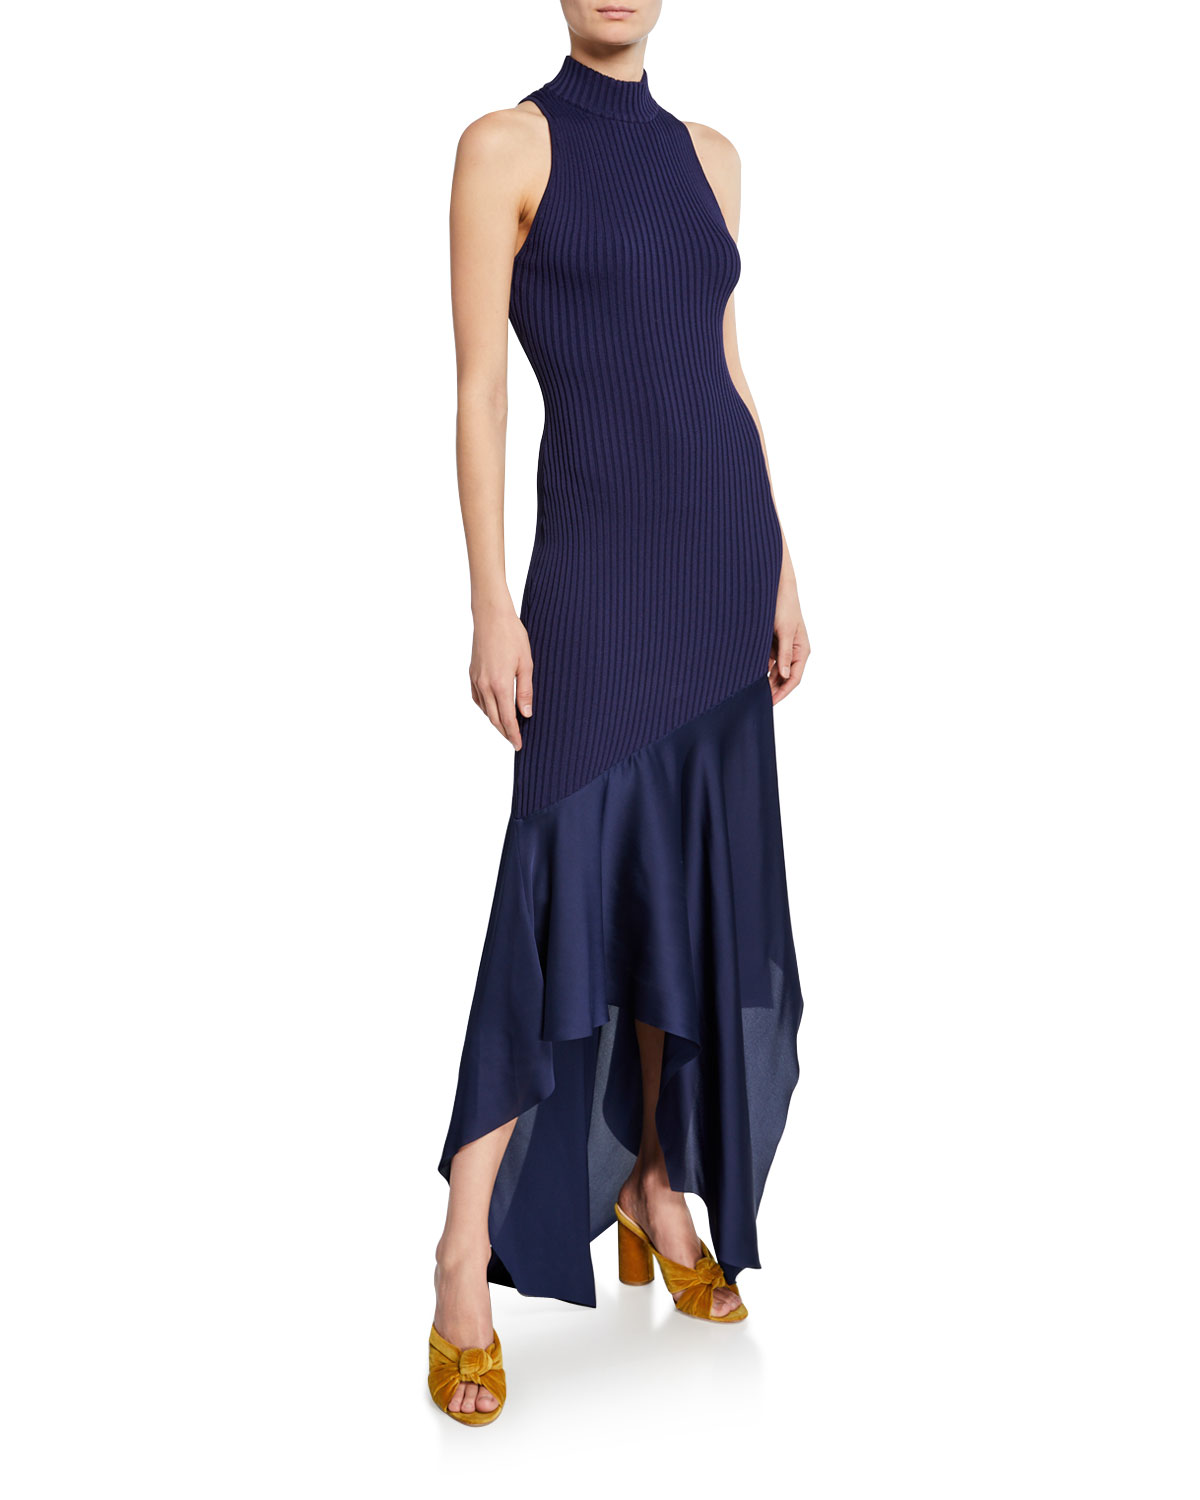 Solace London Dresses DILAN HIGH-NECK SLEEVELESS COMBO DRESS